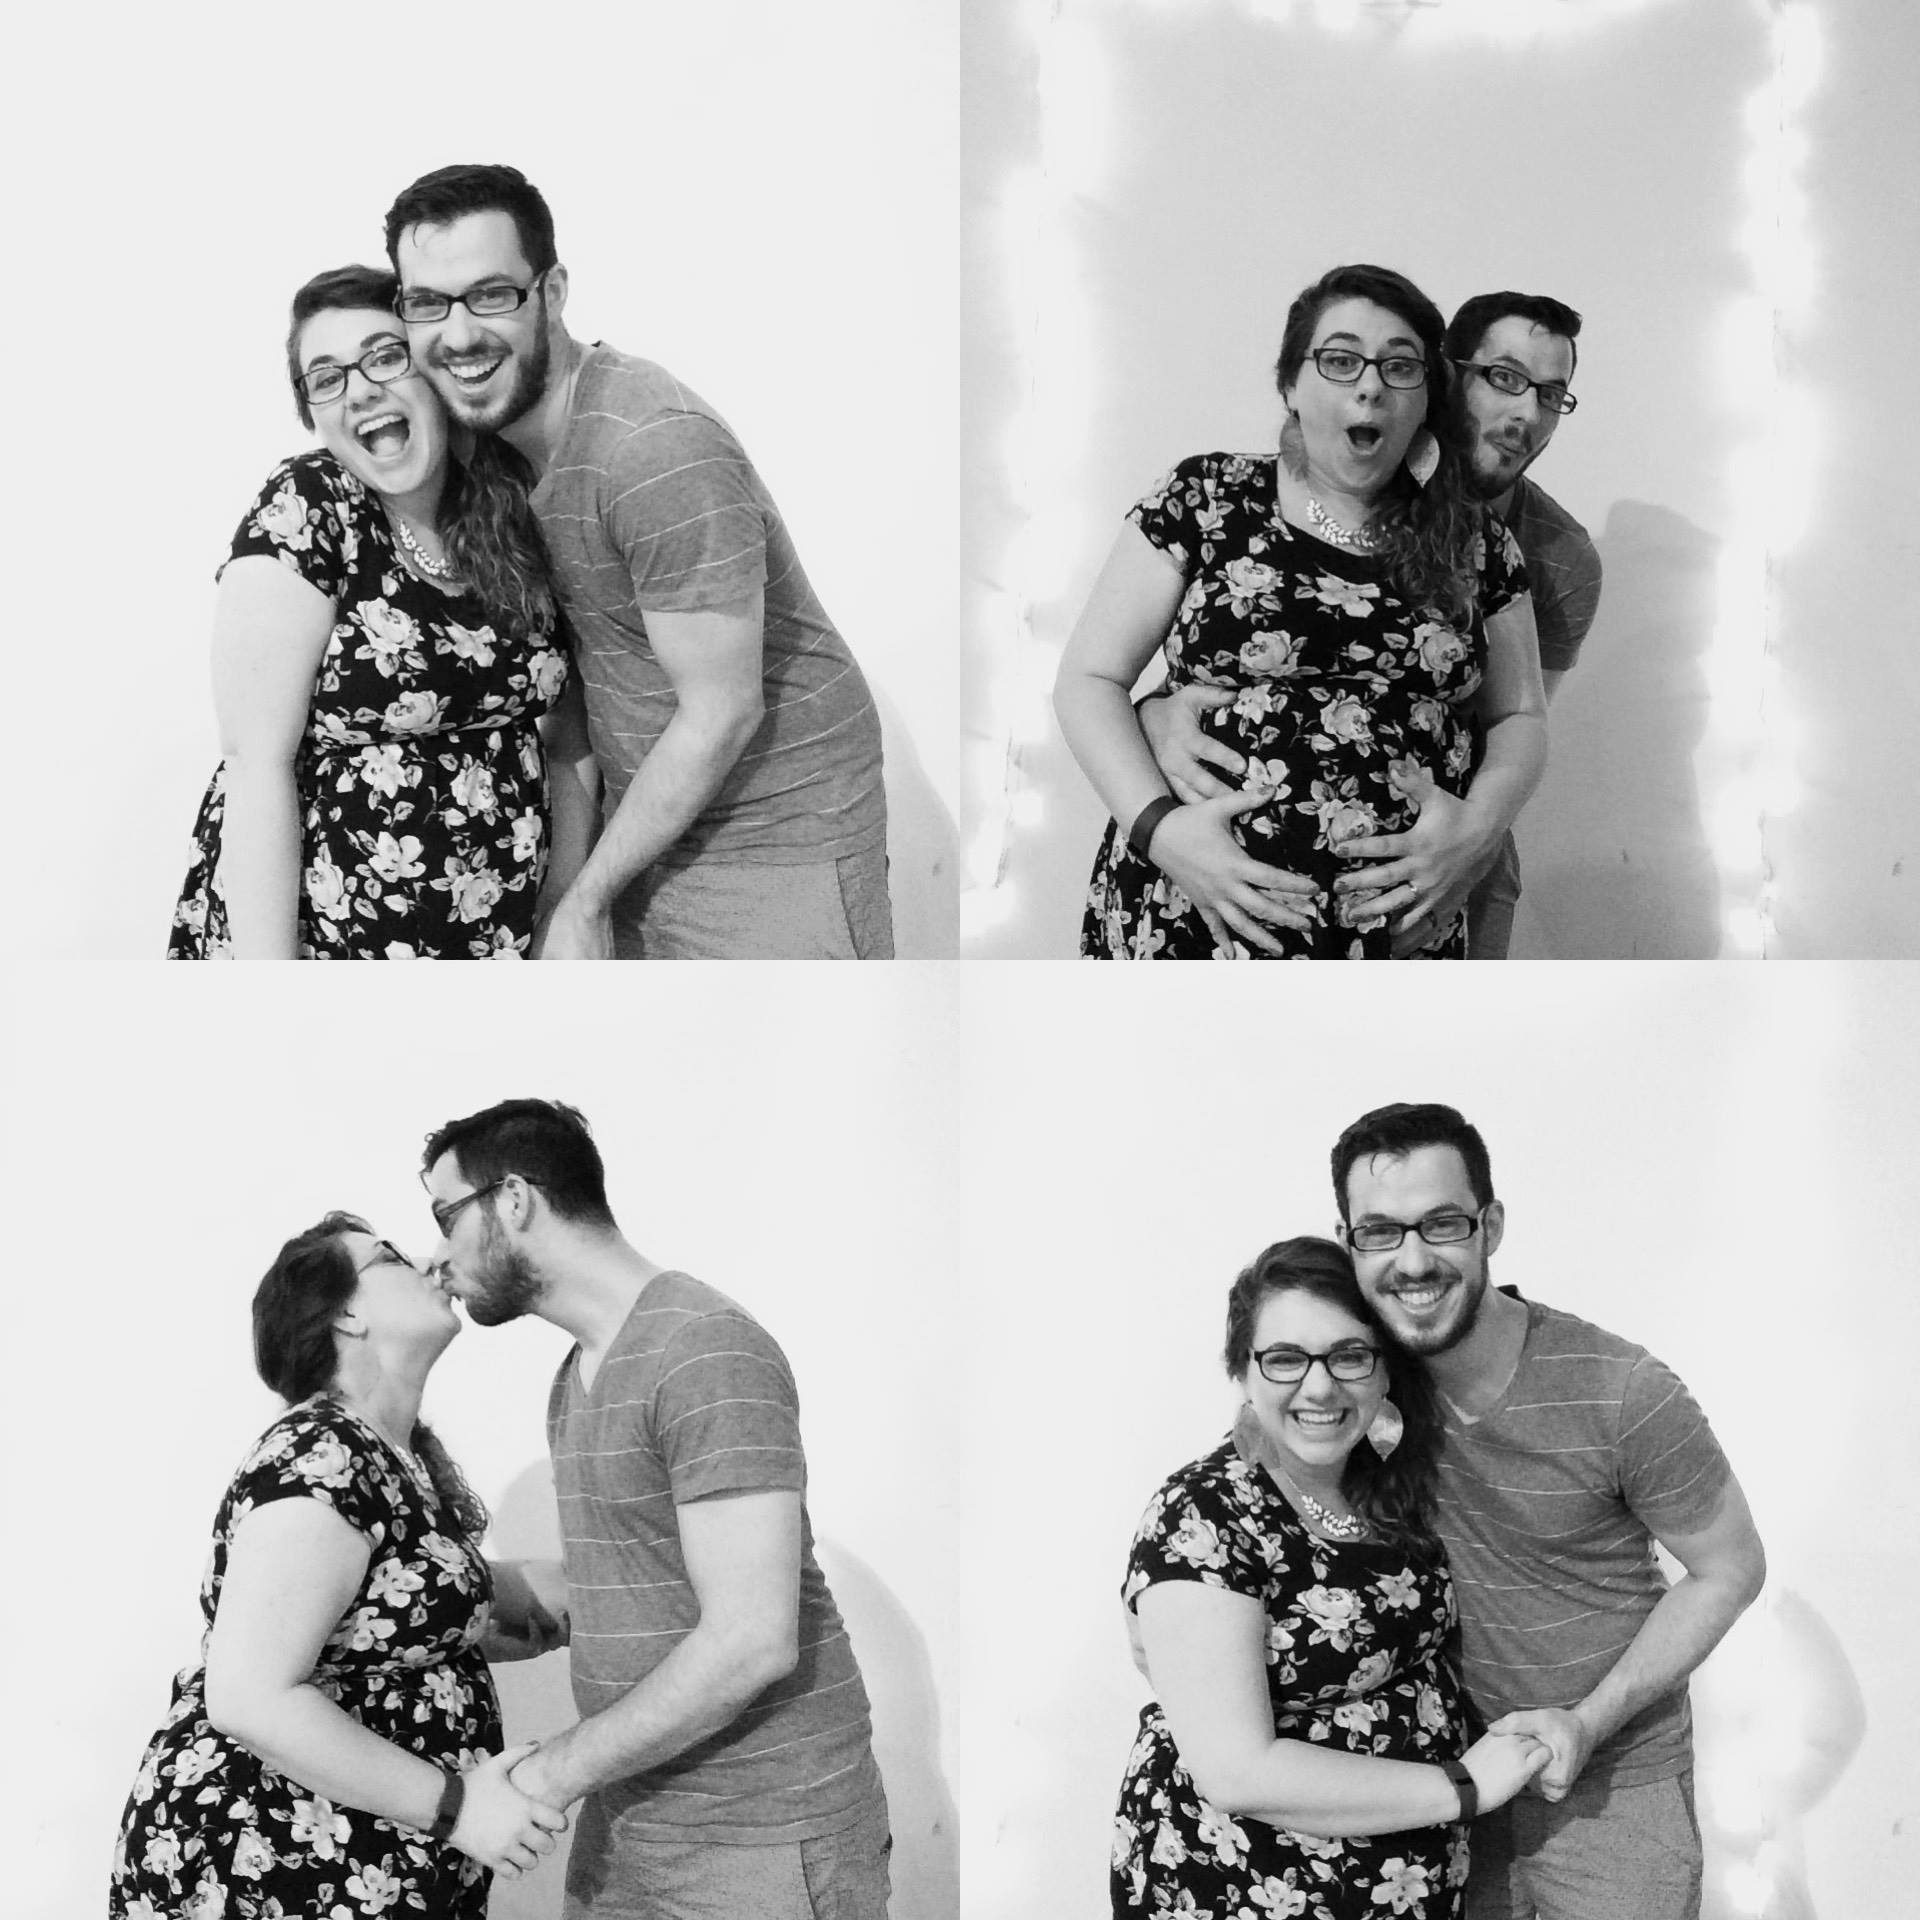 a Very Pregnant Tori and with Peter at an open house photo booth this summer